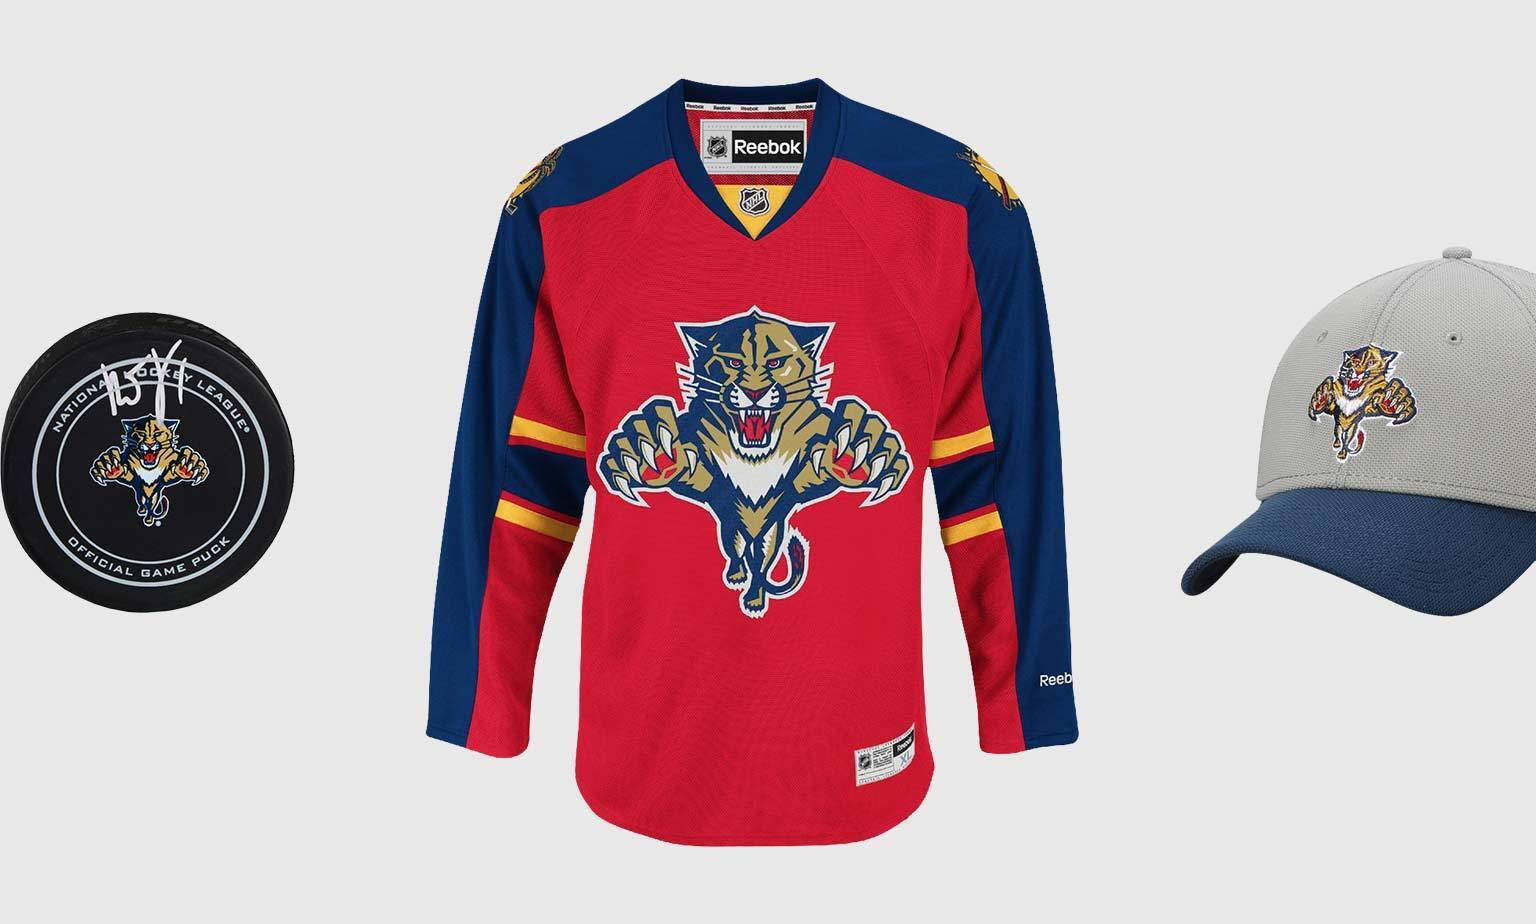 outlet store 0070e daba3 Florida Panthers Fanatics Branded Authentic Pro Rinkside Full-Zip Jacket -  Navy